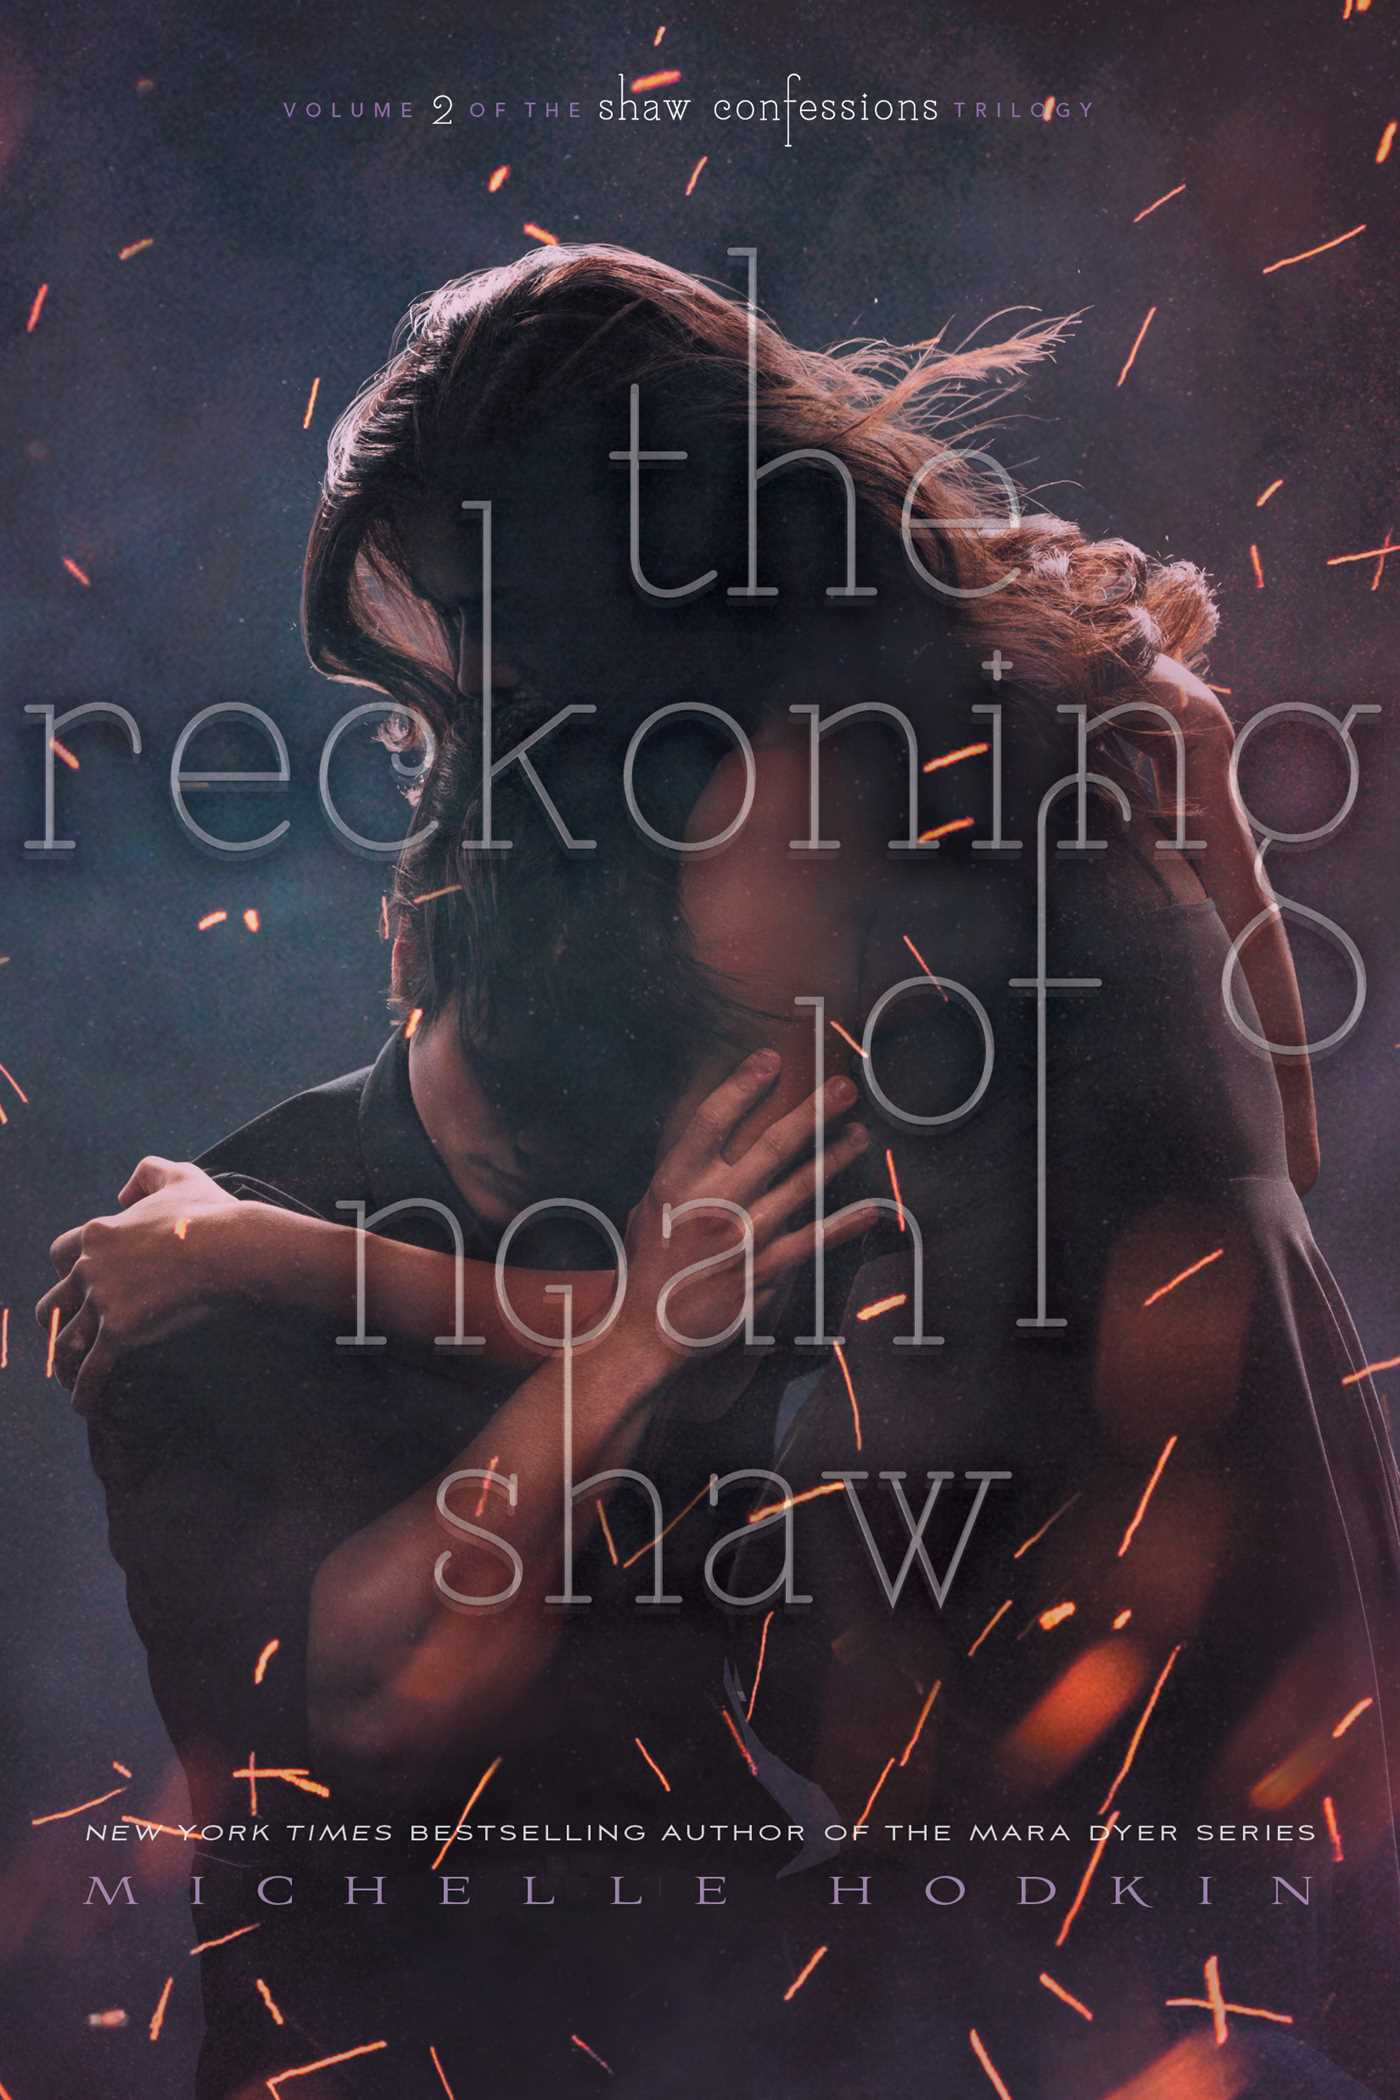 Image result for the reckoning of noah shaw